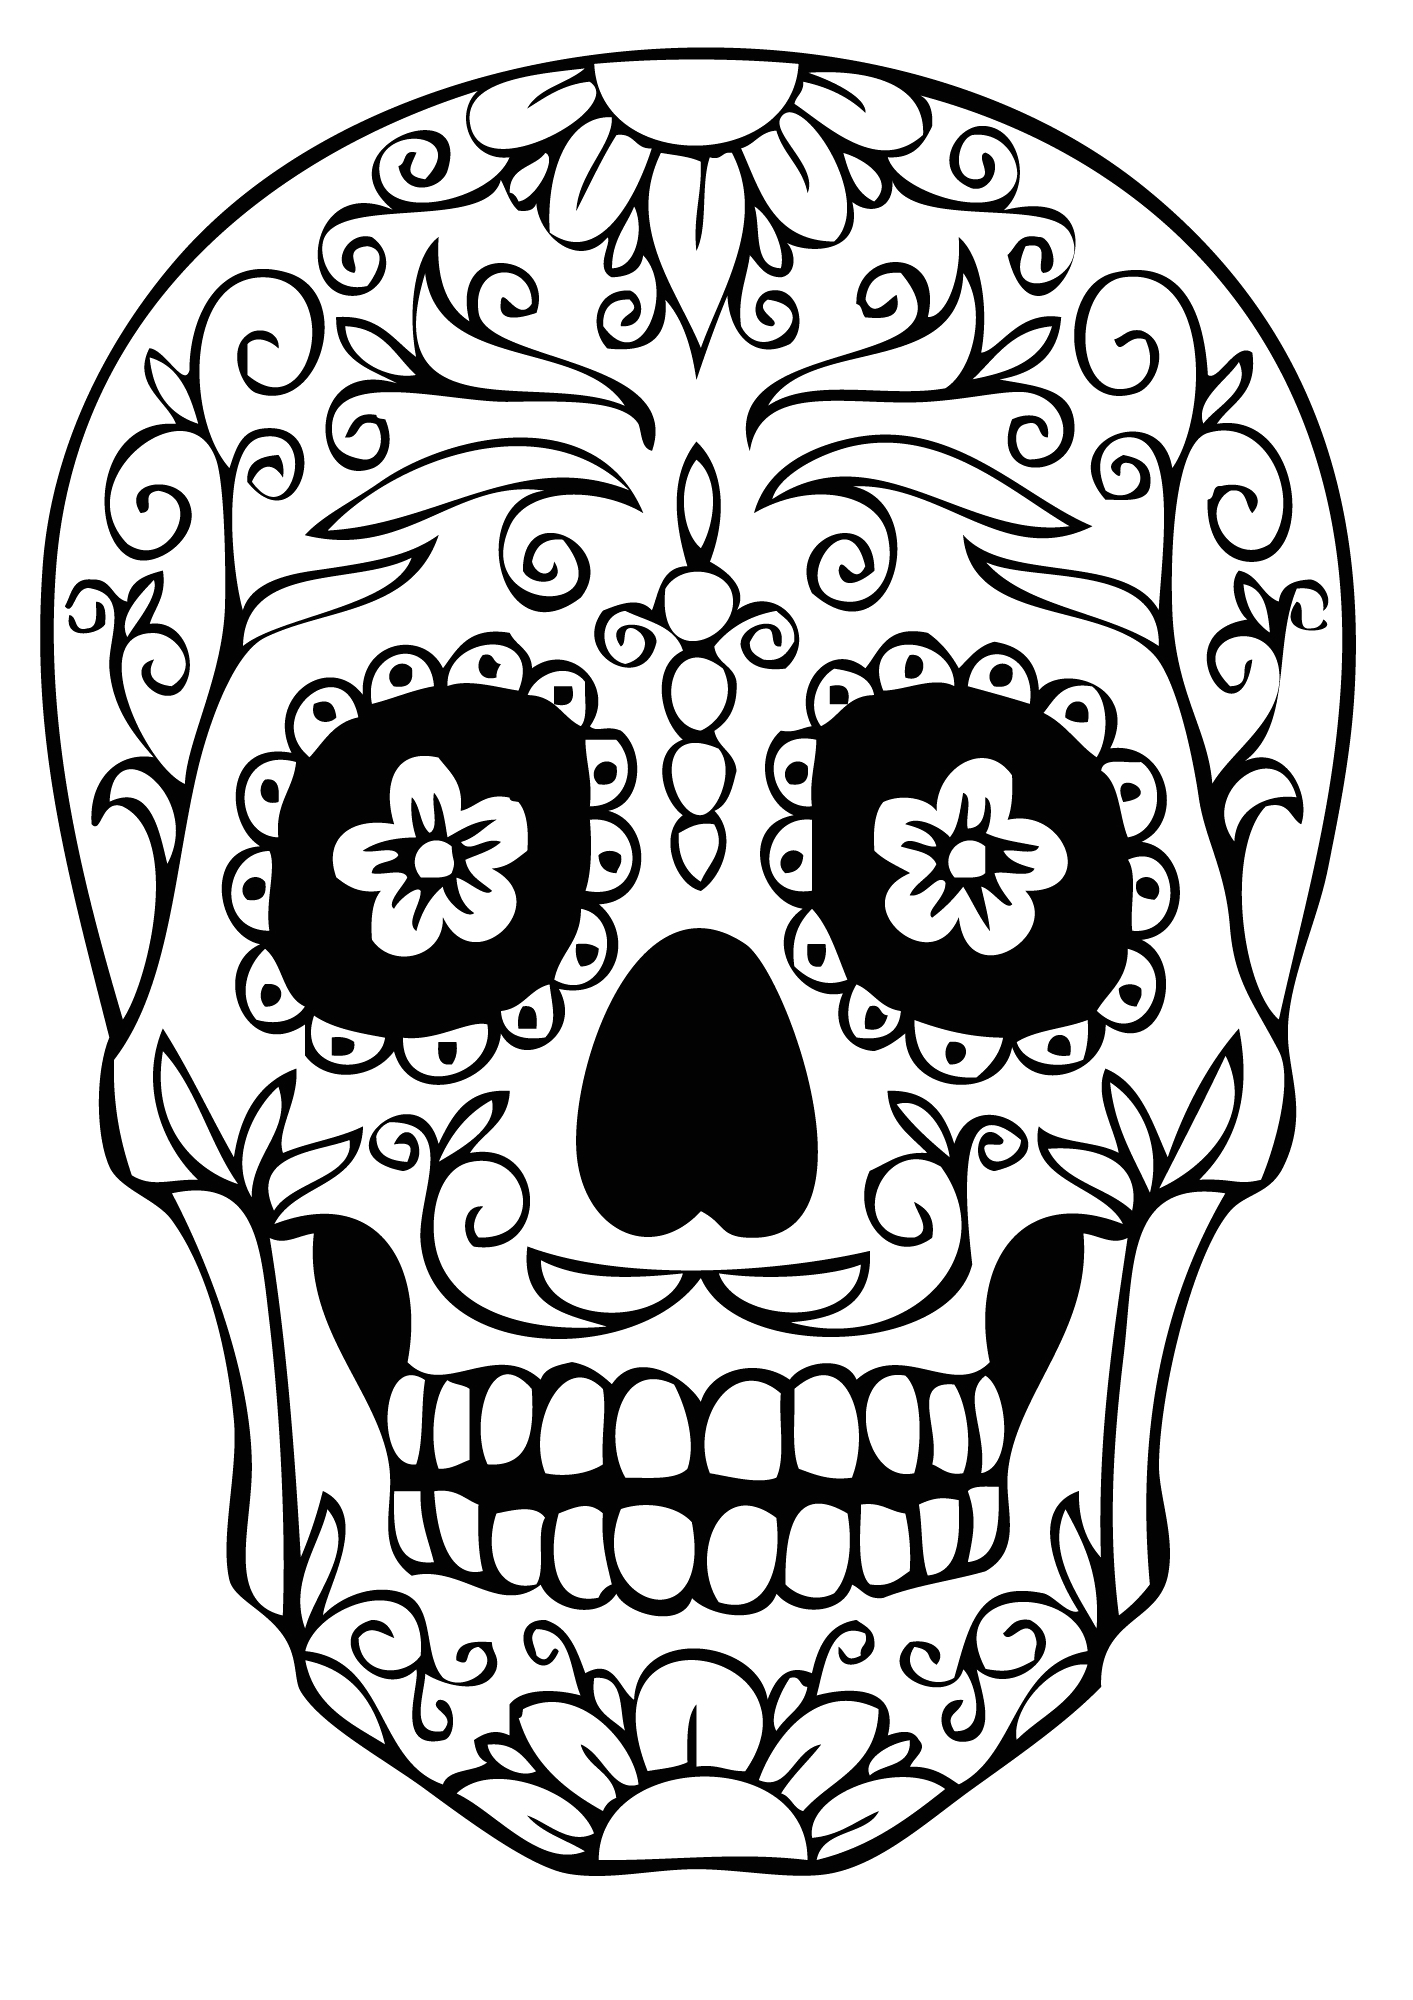 Day Of the Dead Coloring Pages Easy Dia De Los Muertos Day Of the Dead for Children Dia De